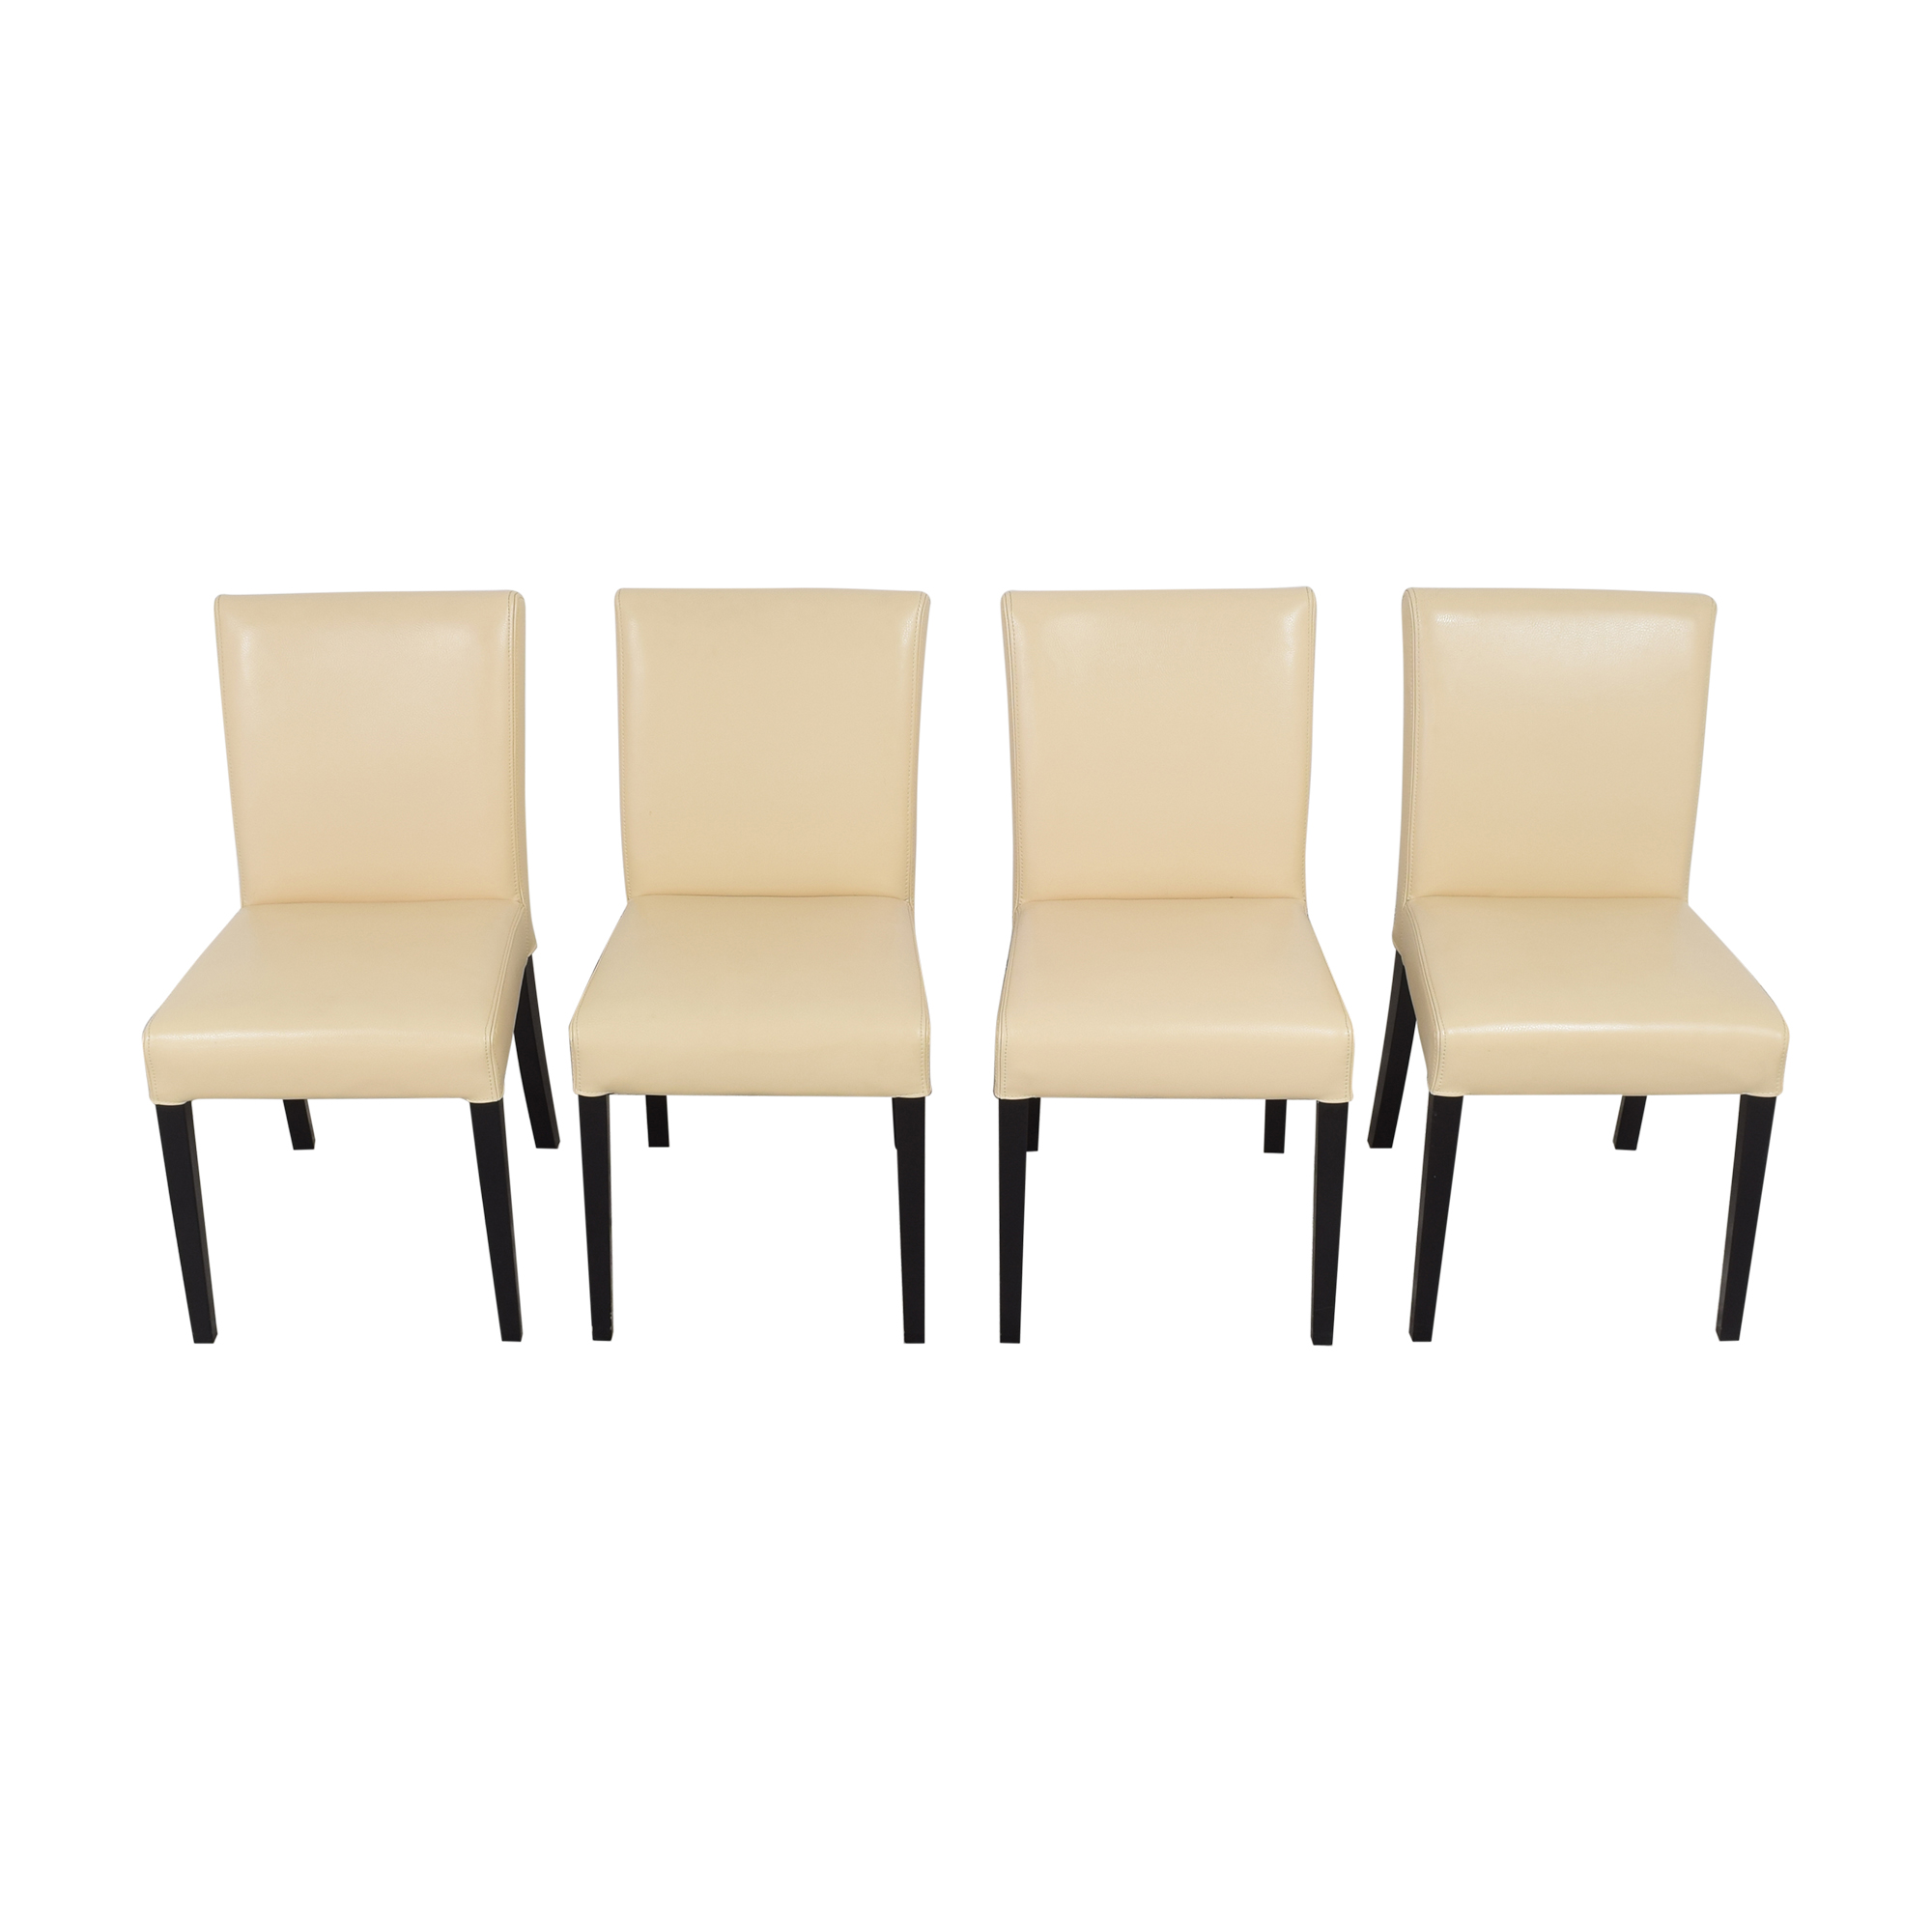 buy Crate & Barrel Crate & Barrel Lowe Dining Side Chairs online